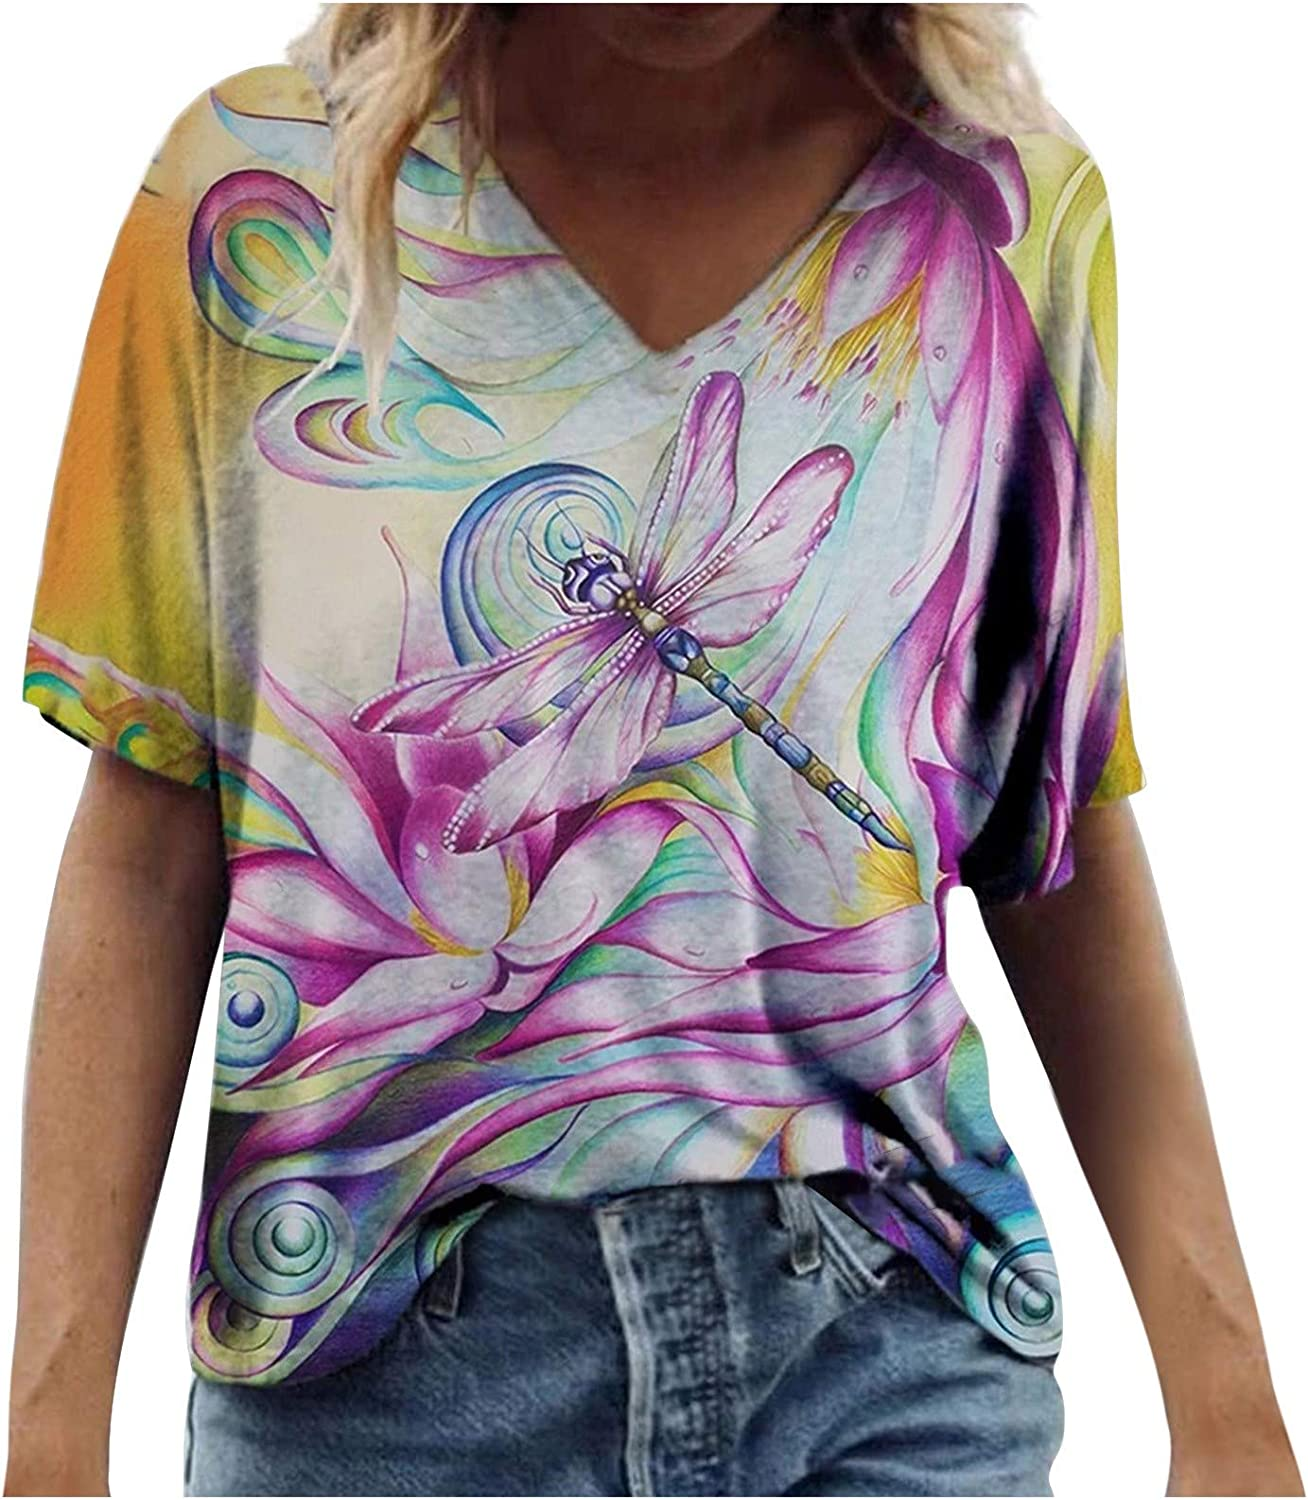 naioewe Womens Short Sleeve Tops Casual V-Neck Floral Graphic Tshirts Loose Summer Blouse Tops Tunics Comfy Daily Tees